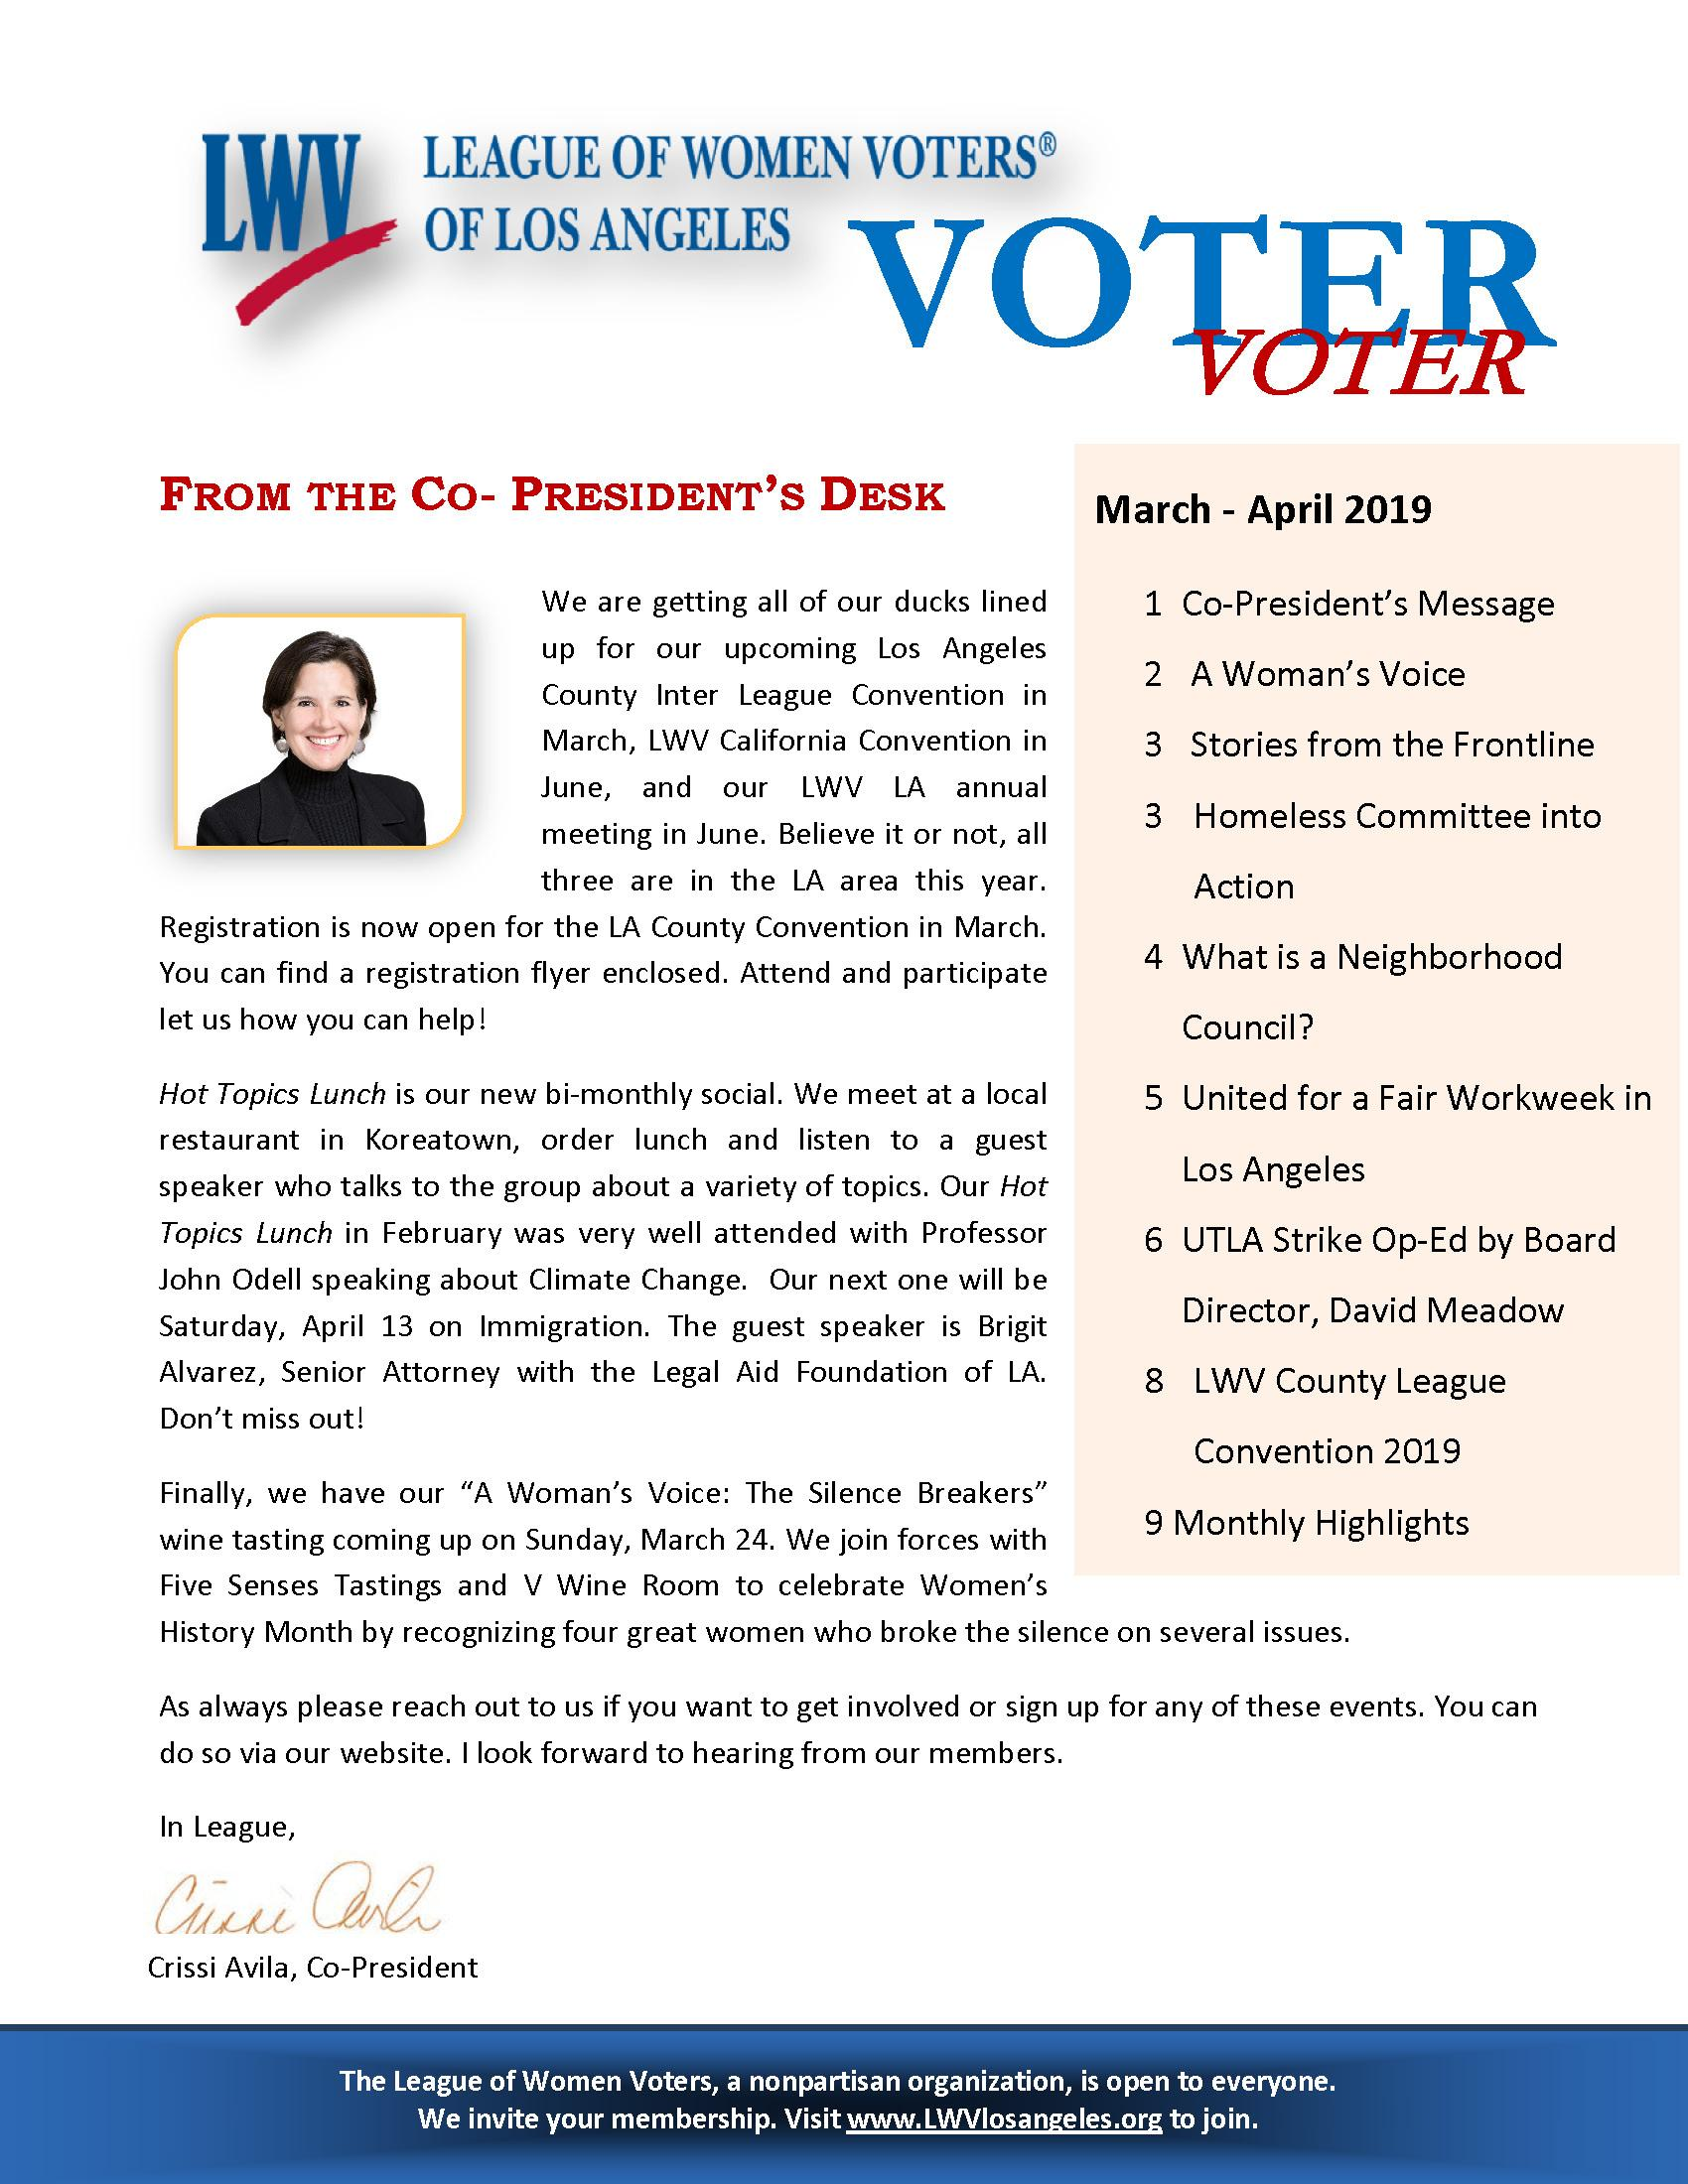 March 2019 VOTER